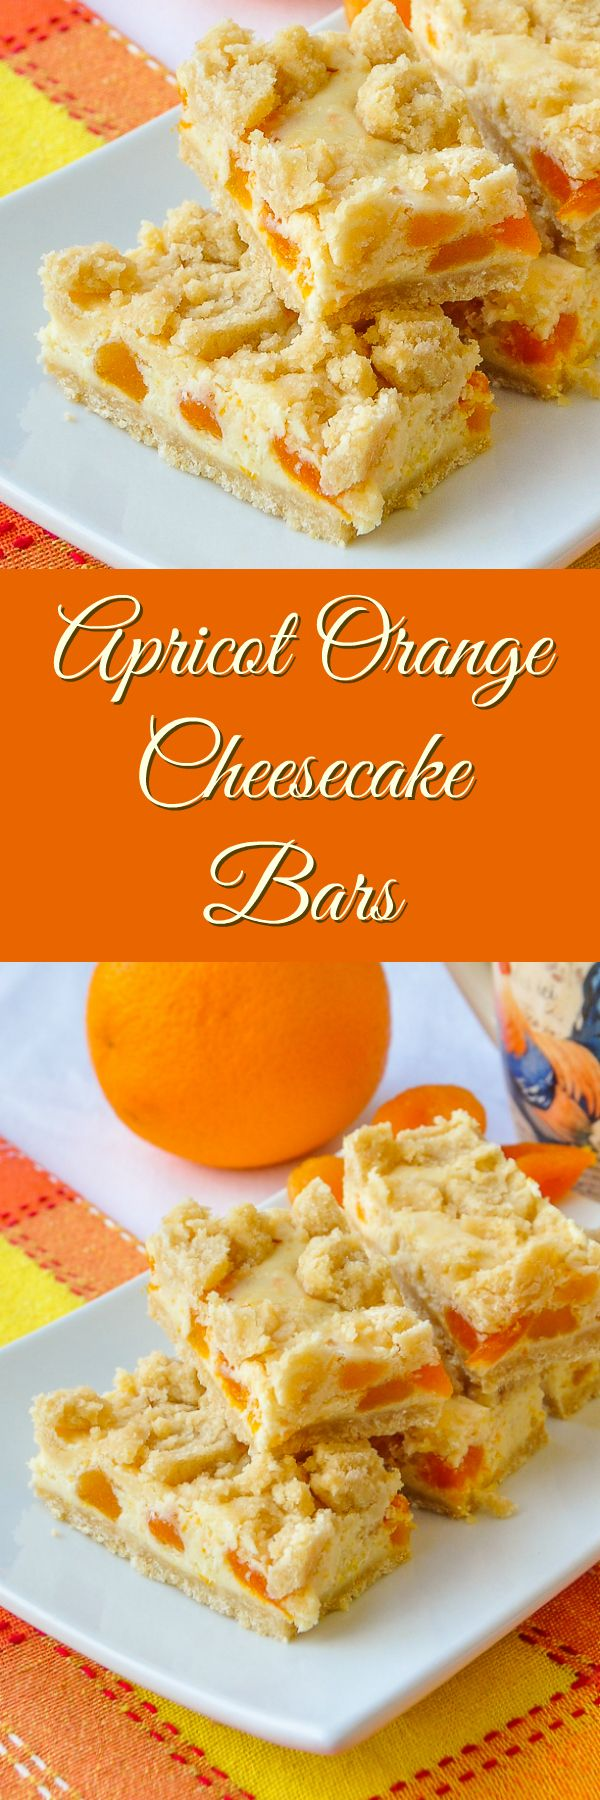 Apricot Orange Cheesecake Bars - a freezer friendly recipe with the delicious combination of dried apricots in a citrus flavored cheesecake surrounded by buttery shortbread crumble.